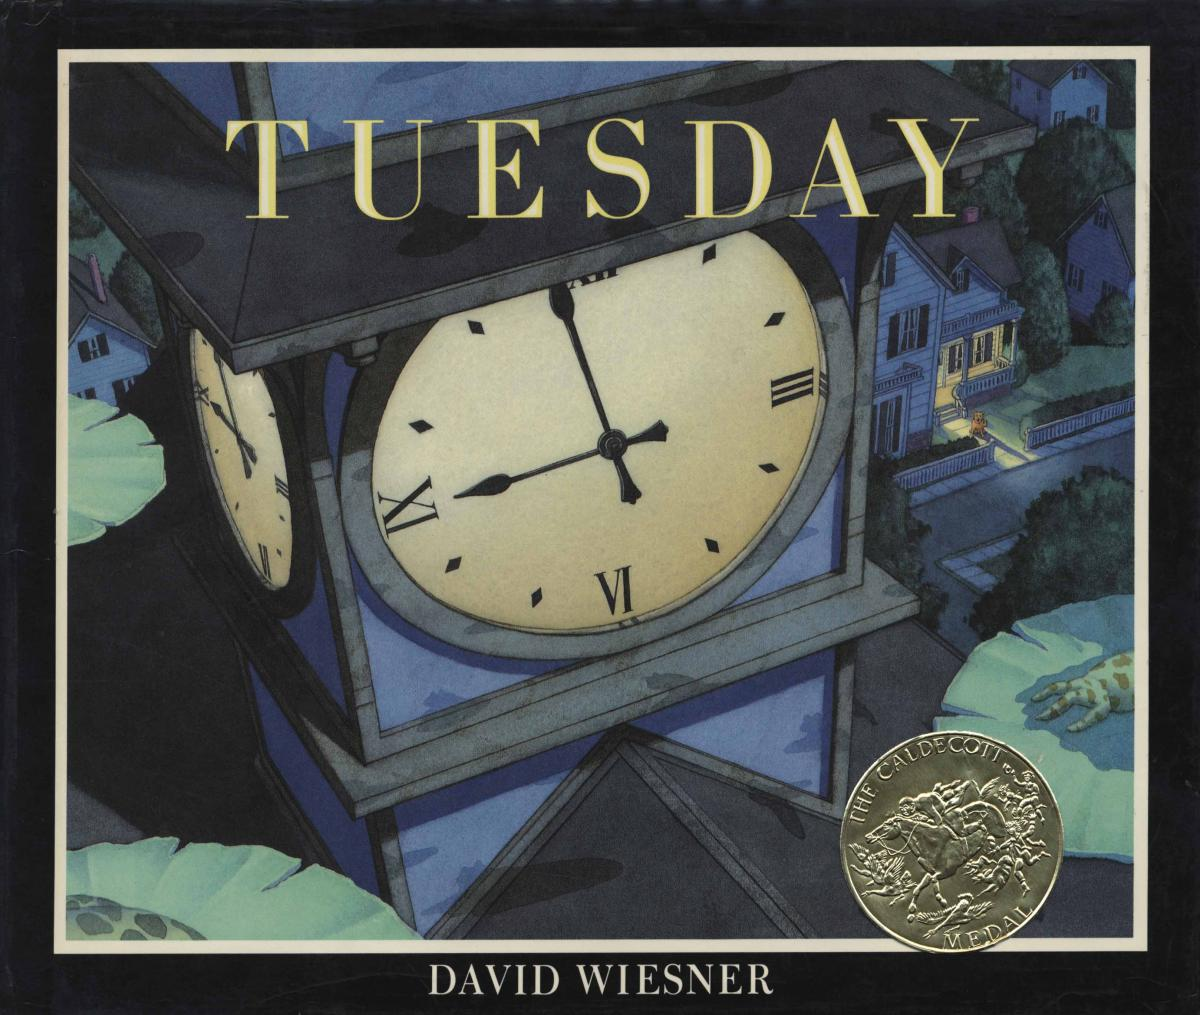 Tuesday - book cover